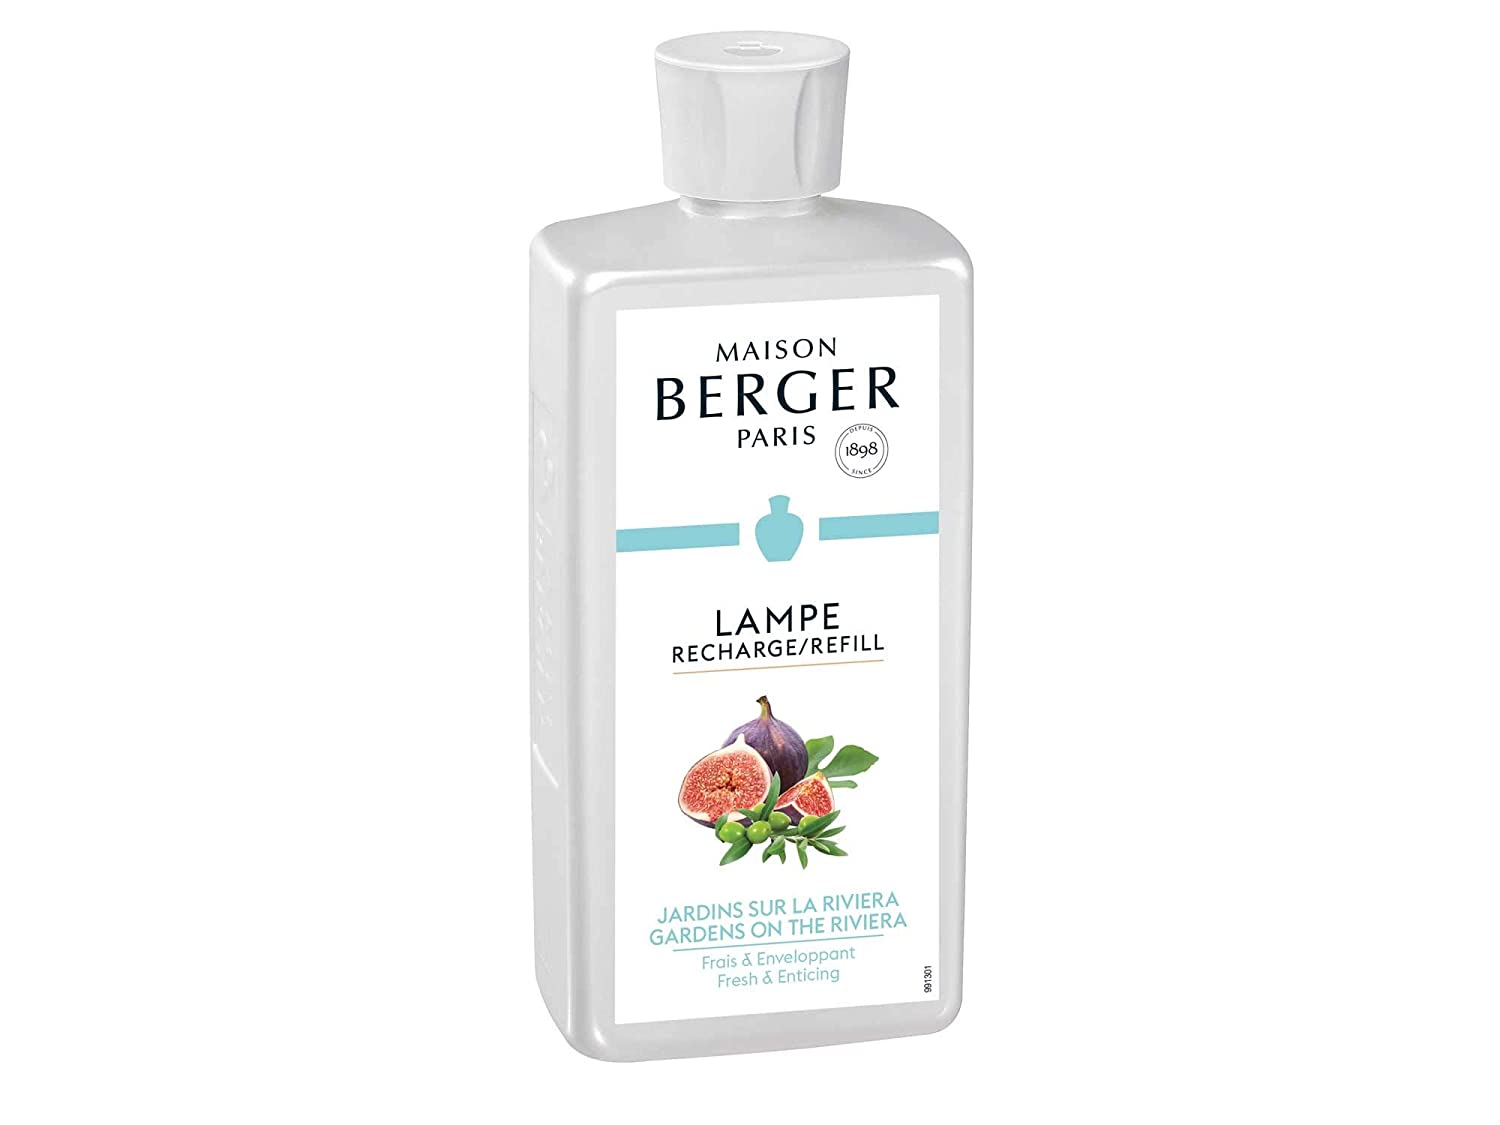 Jardins Riviera Berger The On La Rivieragardens 1l Lampe Sur qSMVUpzG